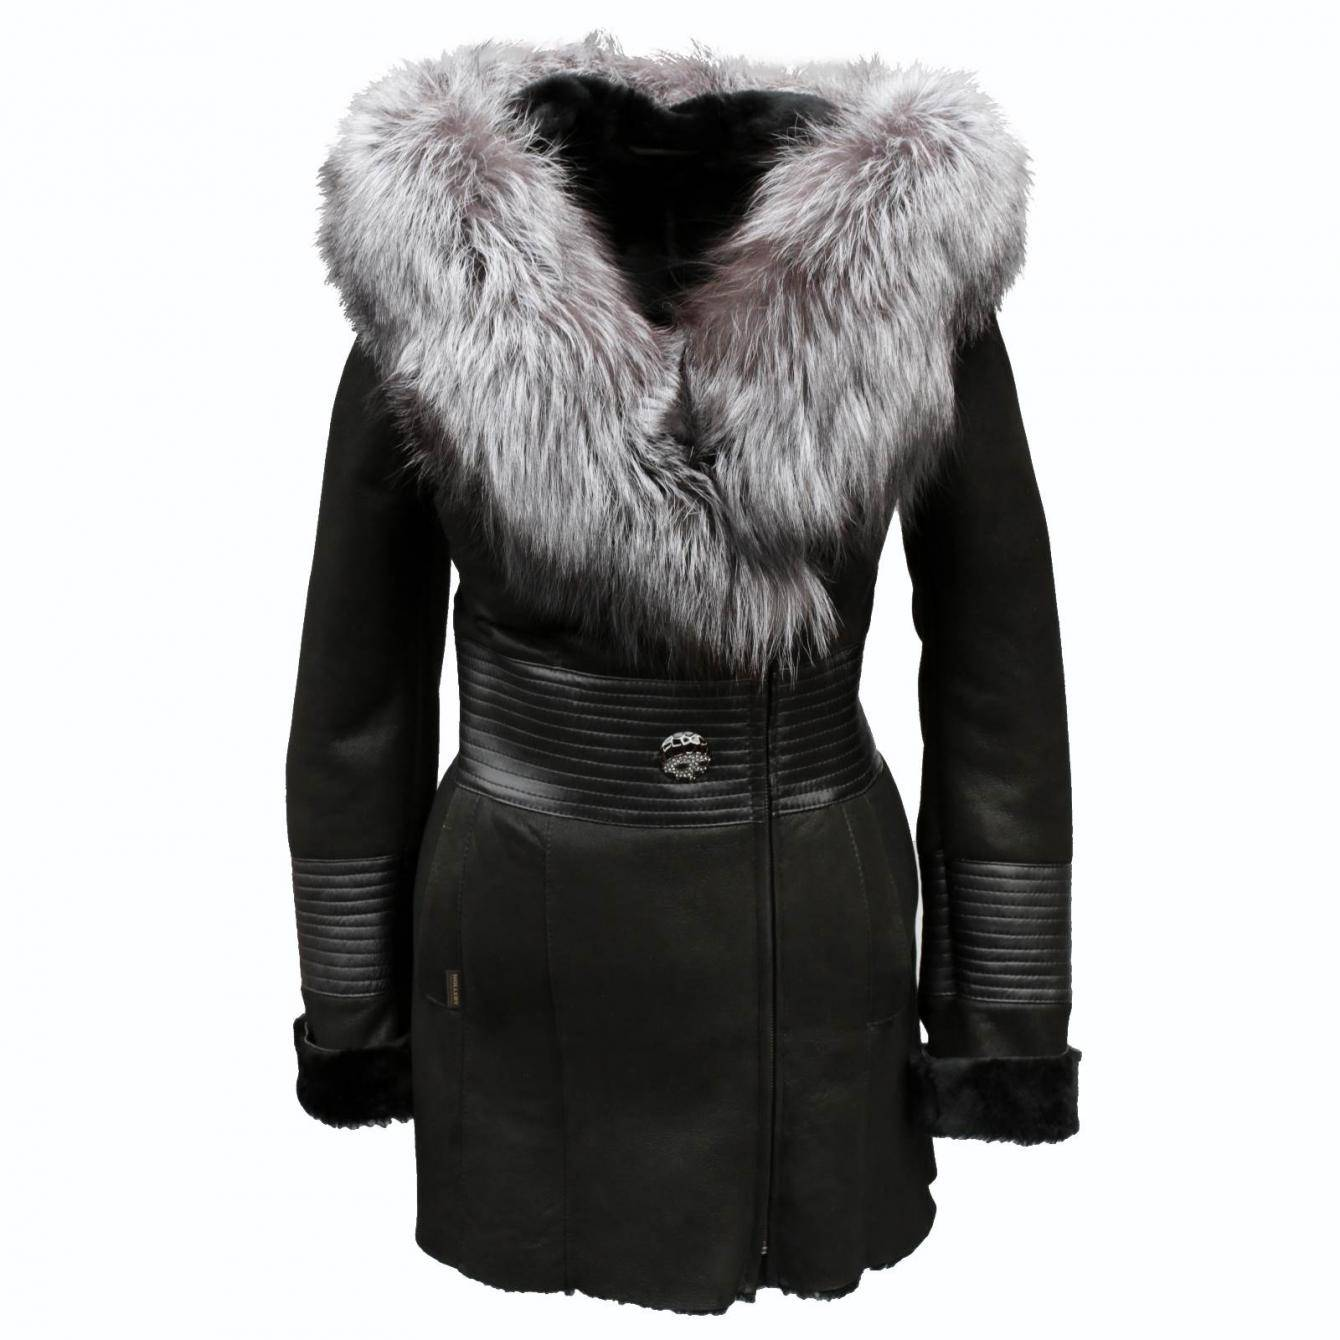 veste de peau mouton serinda court femmes en cuir avec fourrure d 39 hiver renard ebay. Black Bedroom Furniture Sets. Home Design Ideas